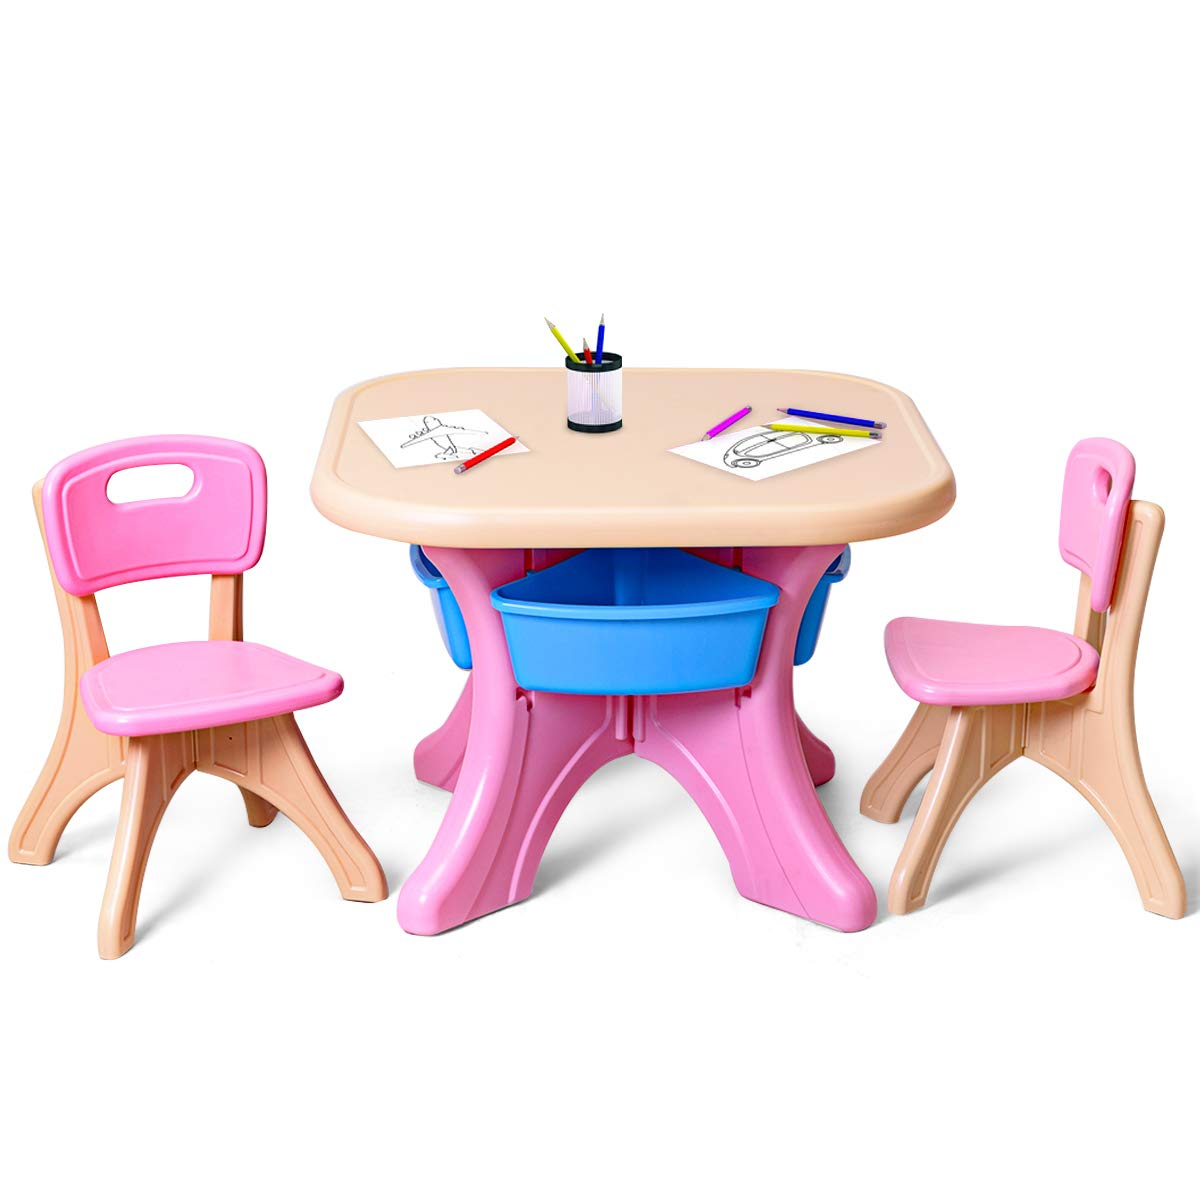 Costzon Kids Table and 2 Chair Set, Children Activity Art Table Set w/Detachable Storage Bins, Strong Bearing Capacity, Lightweight, Kiddie-Sized Plastic Furniture by Costzon